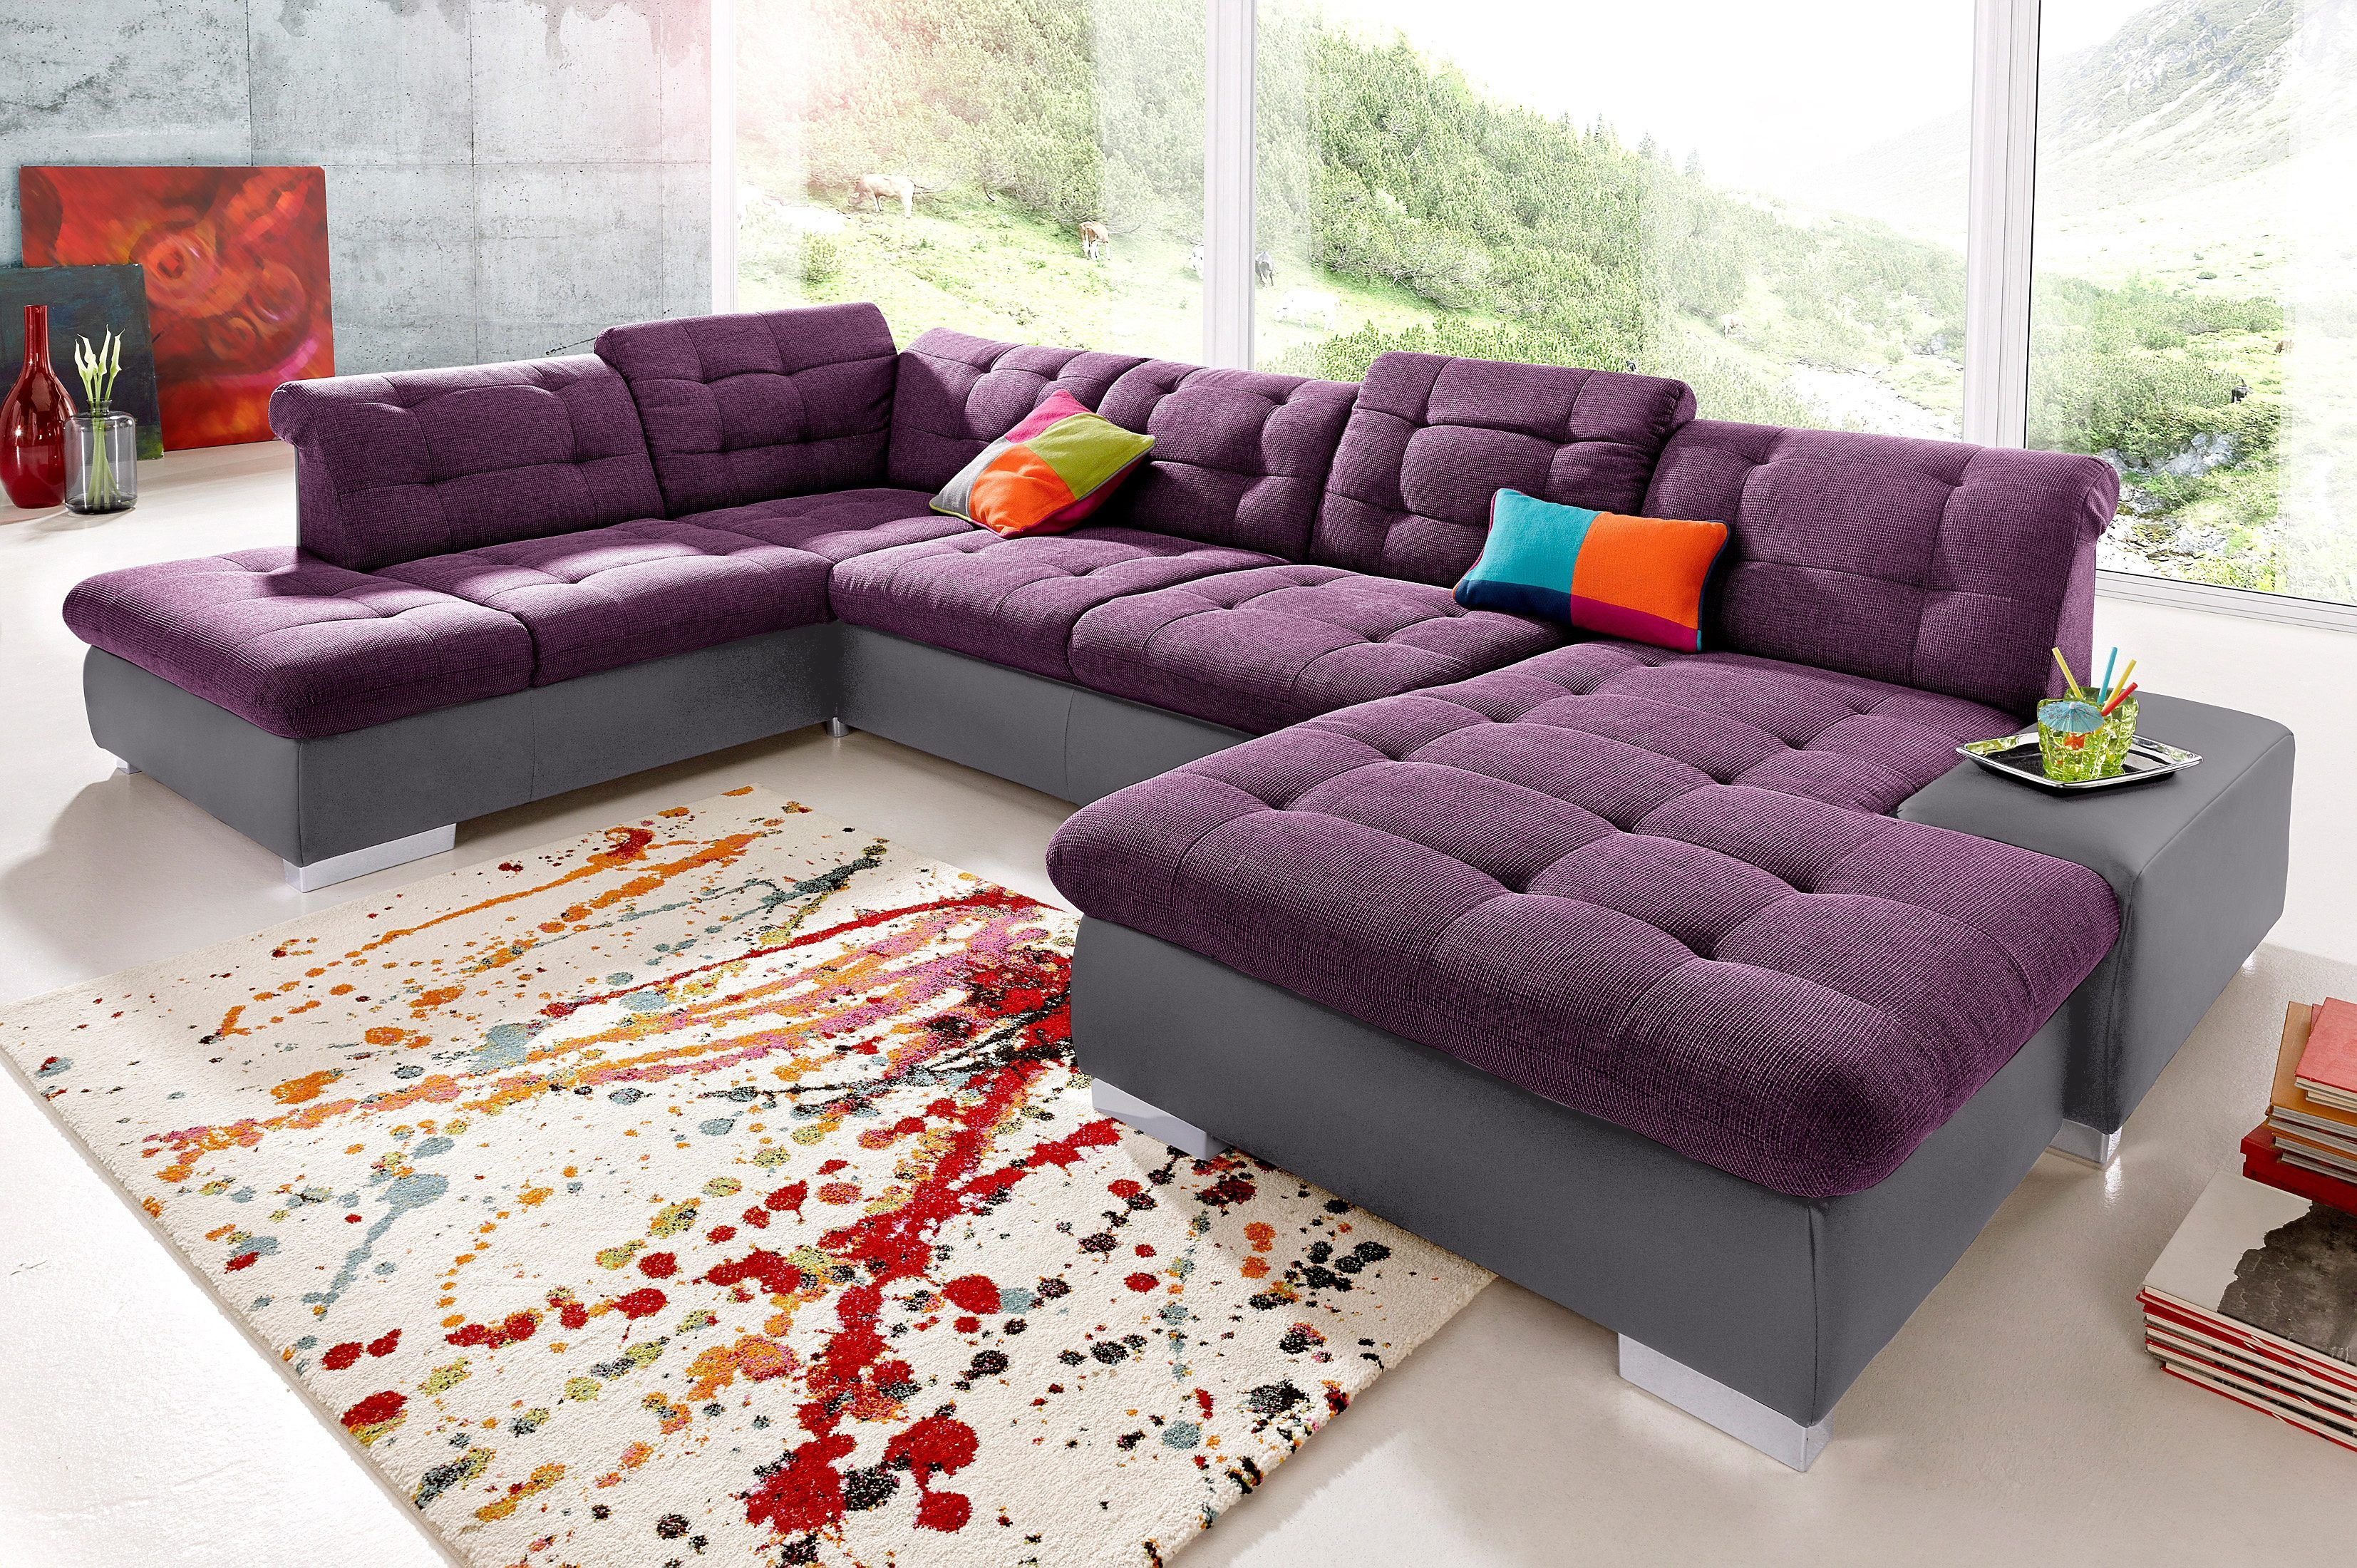 Sit&more Wohnlandschaft Mit Bettfunktion Pin By Ladendirekt On Sofas Couches Sofa L Shaped Couch